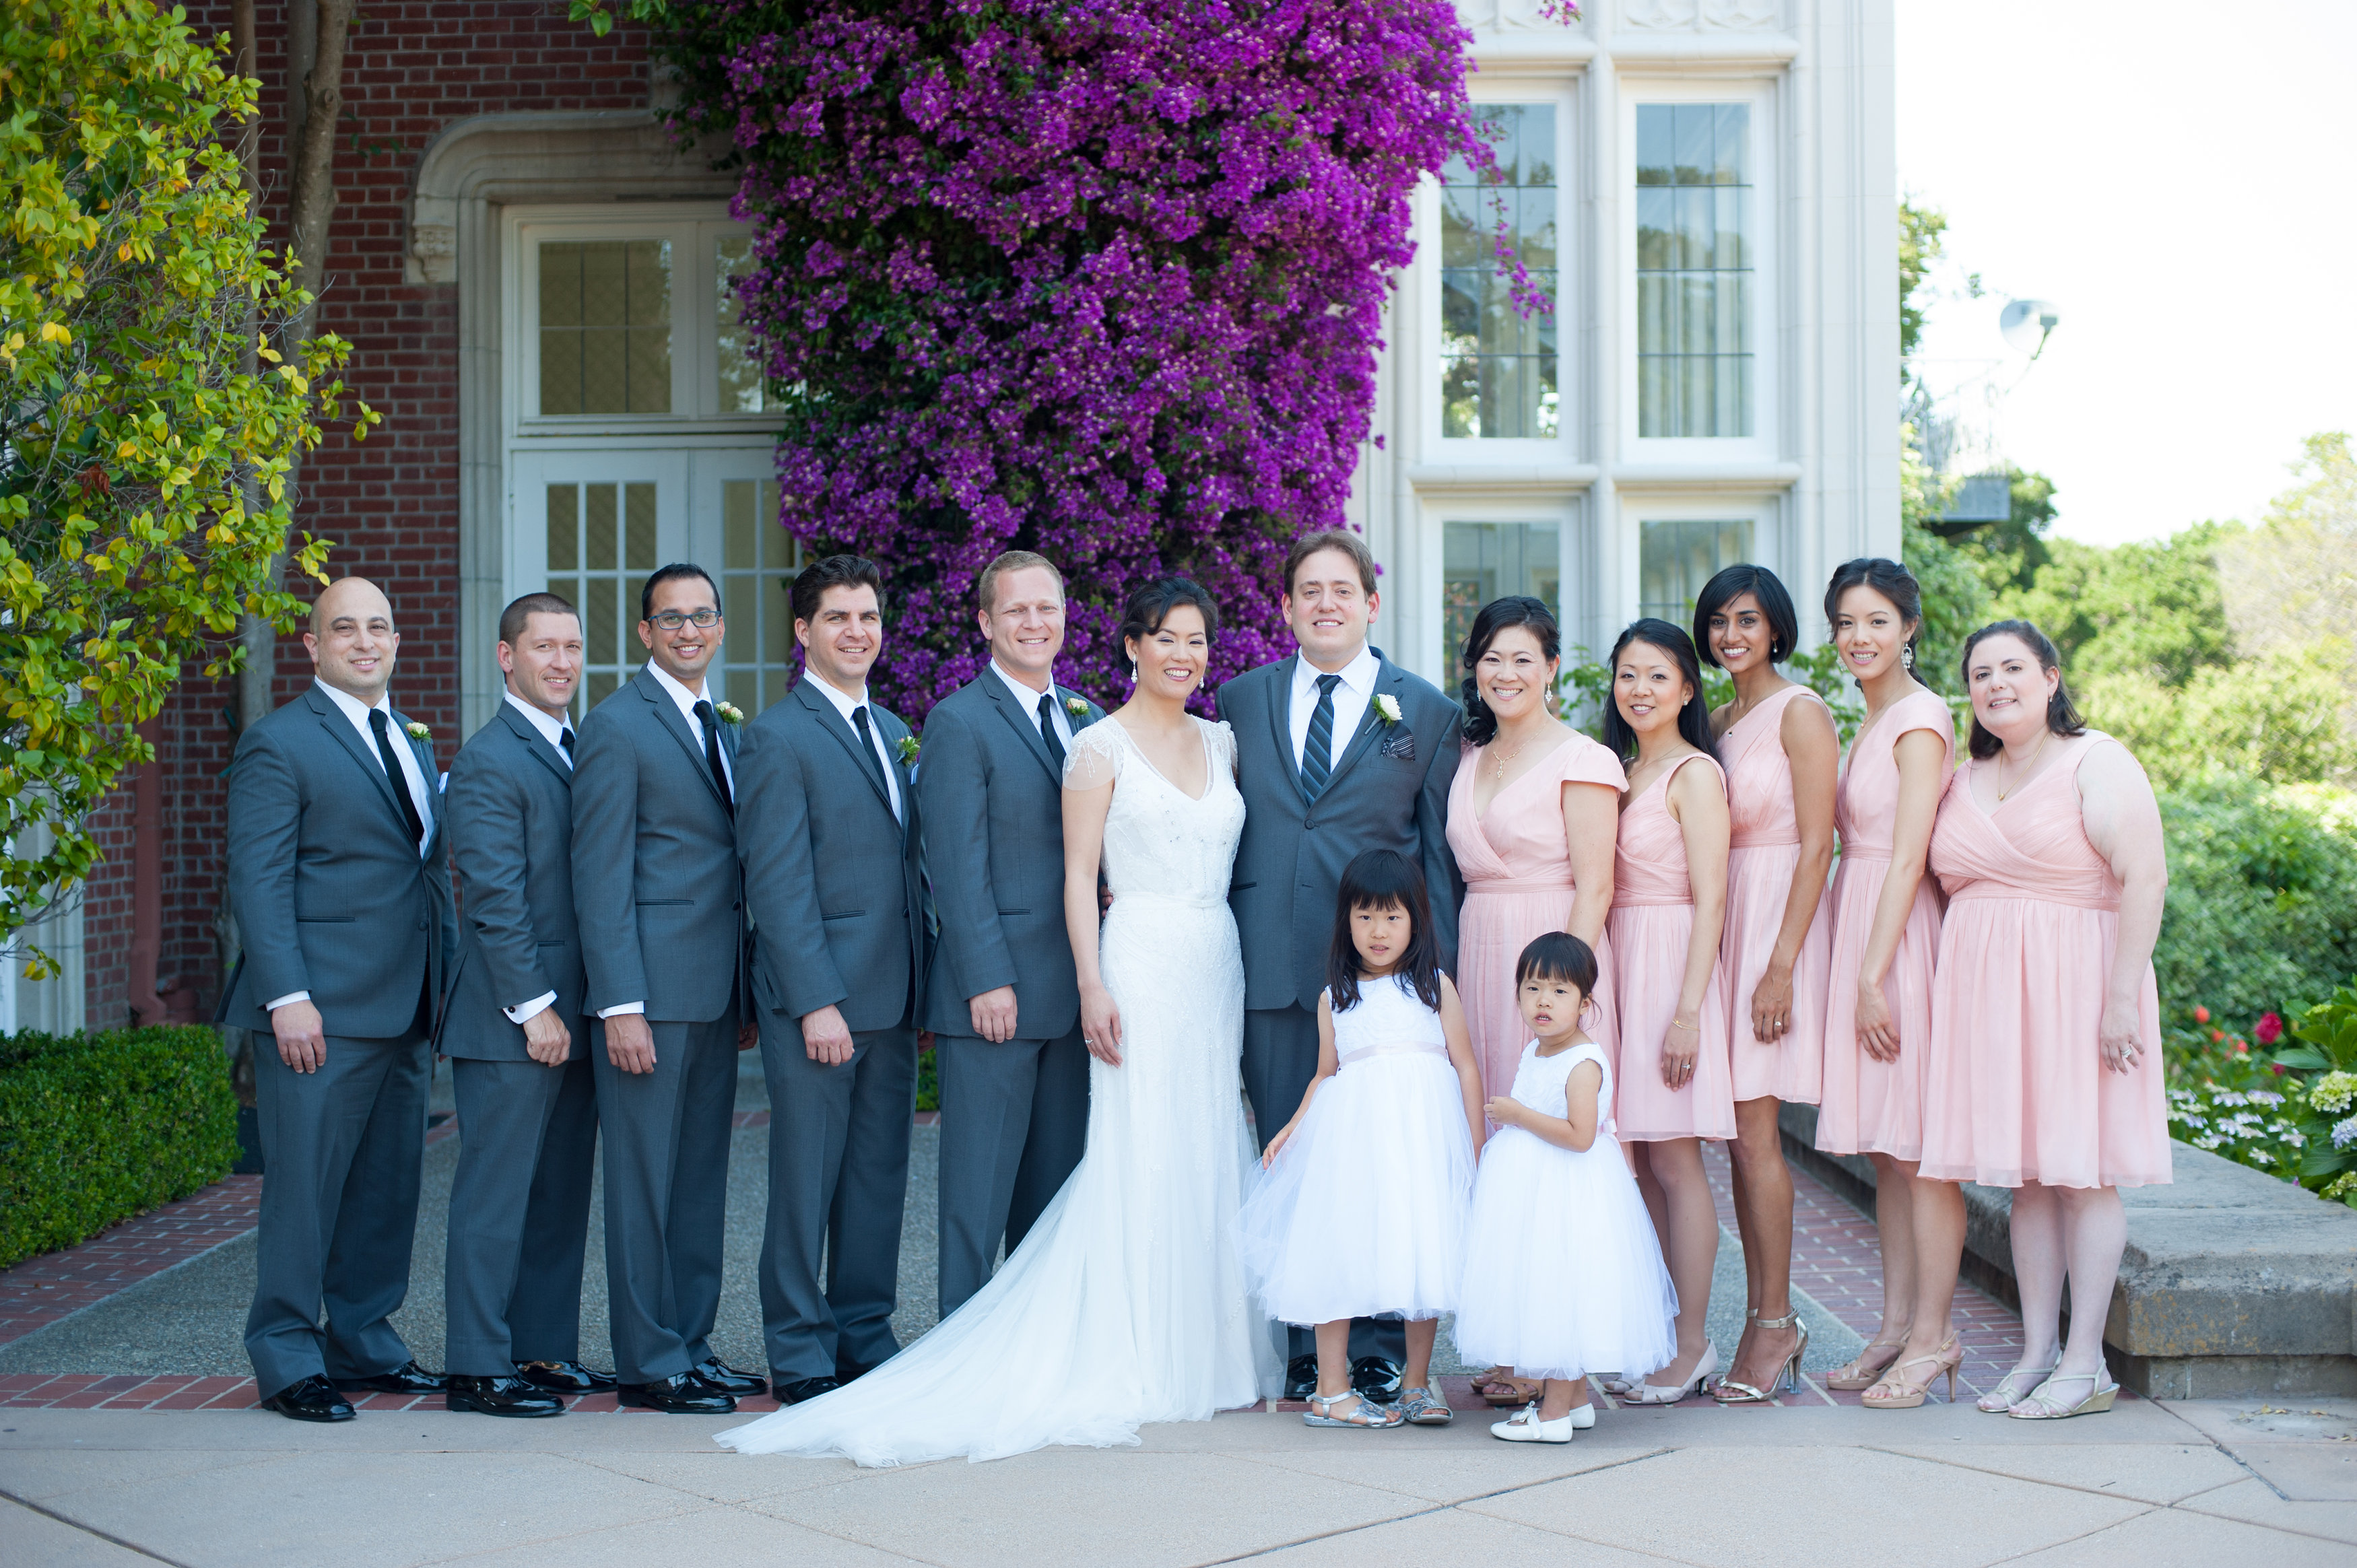 Kohl Mansion Wedding Cost | Angie S And Michael S Dream Wedding At Kohl Mansion Wedding Woof